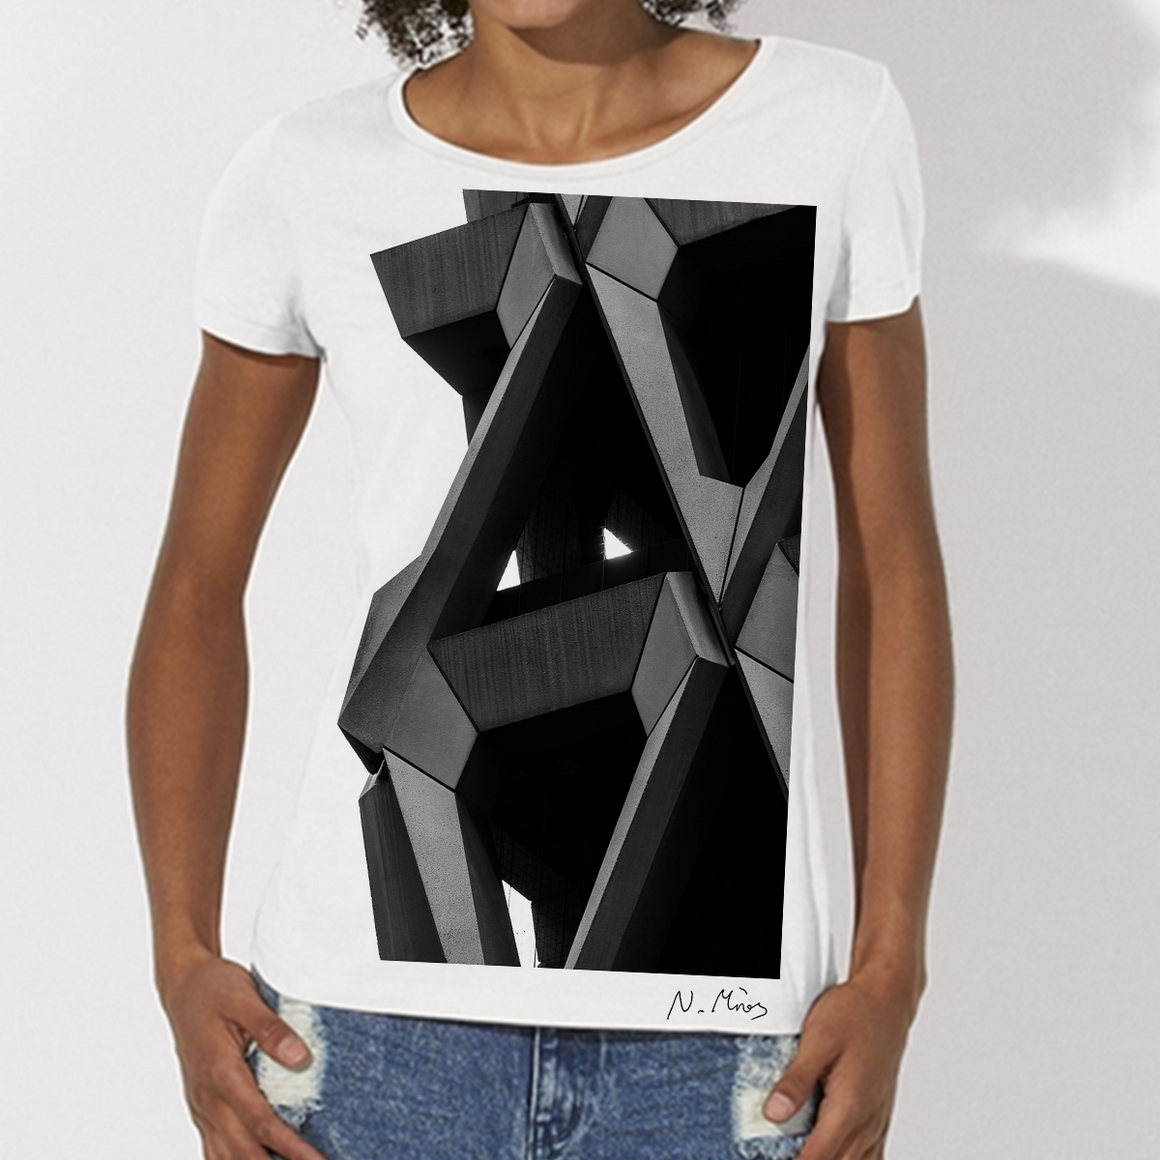 Women's Brutalist Modern Architecture T-Shirt Welbeck by Nick Miners